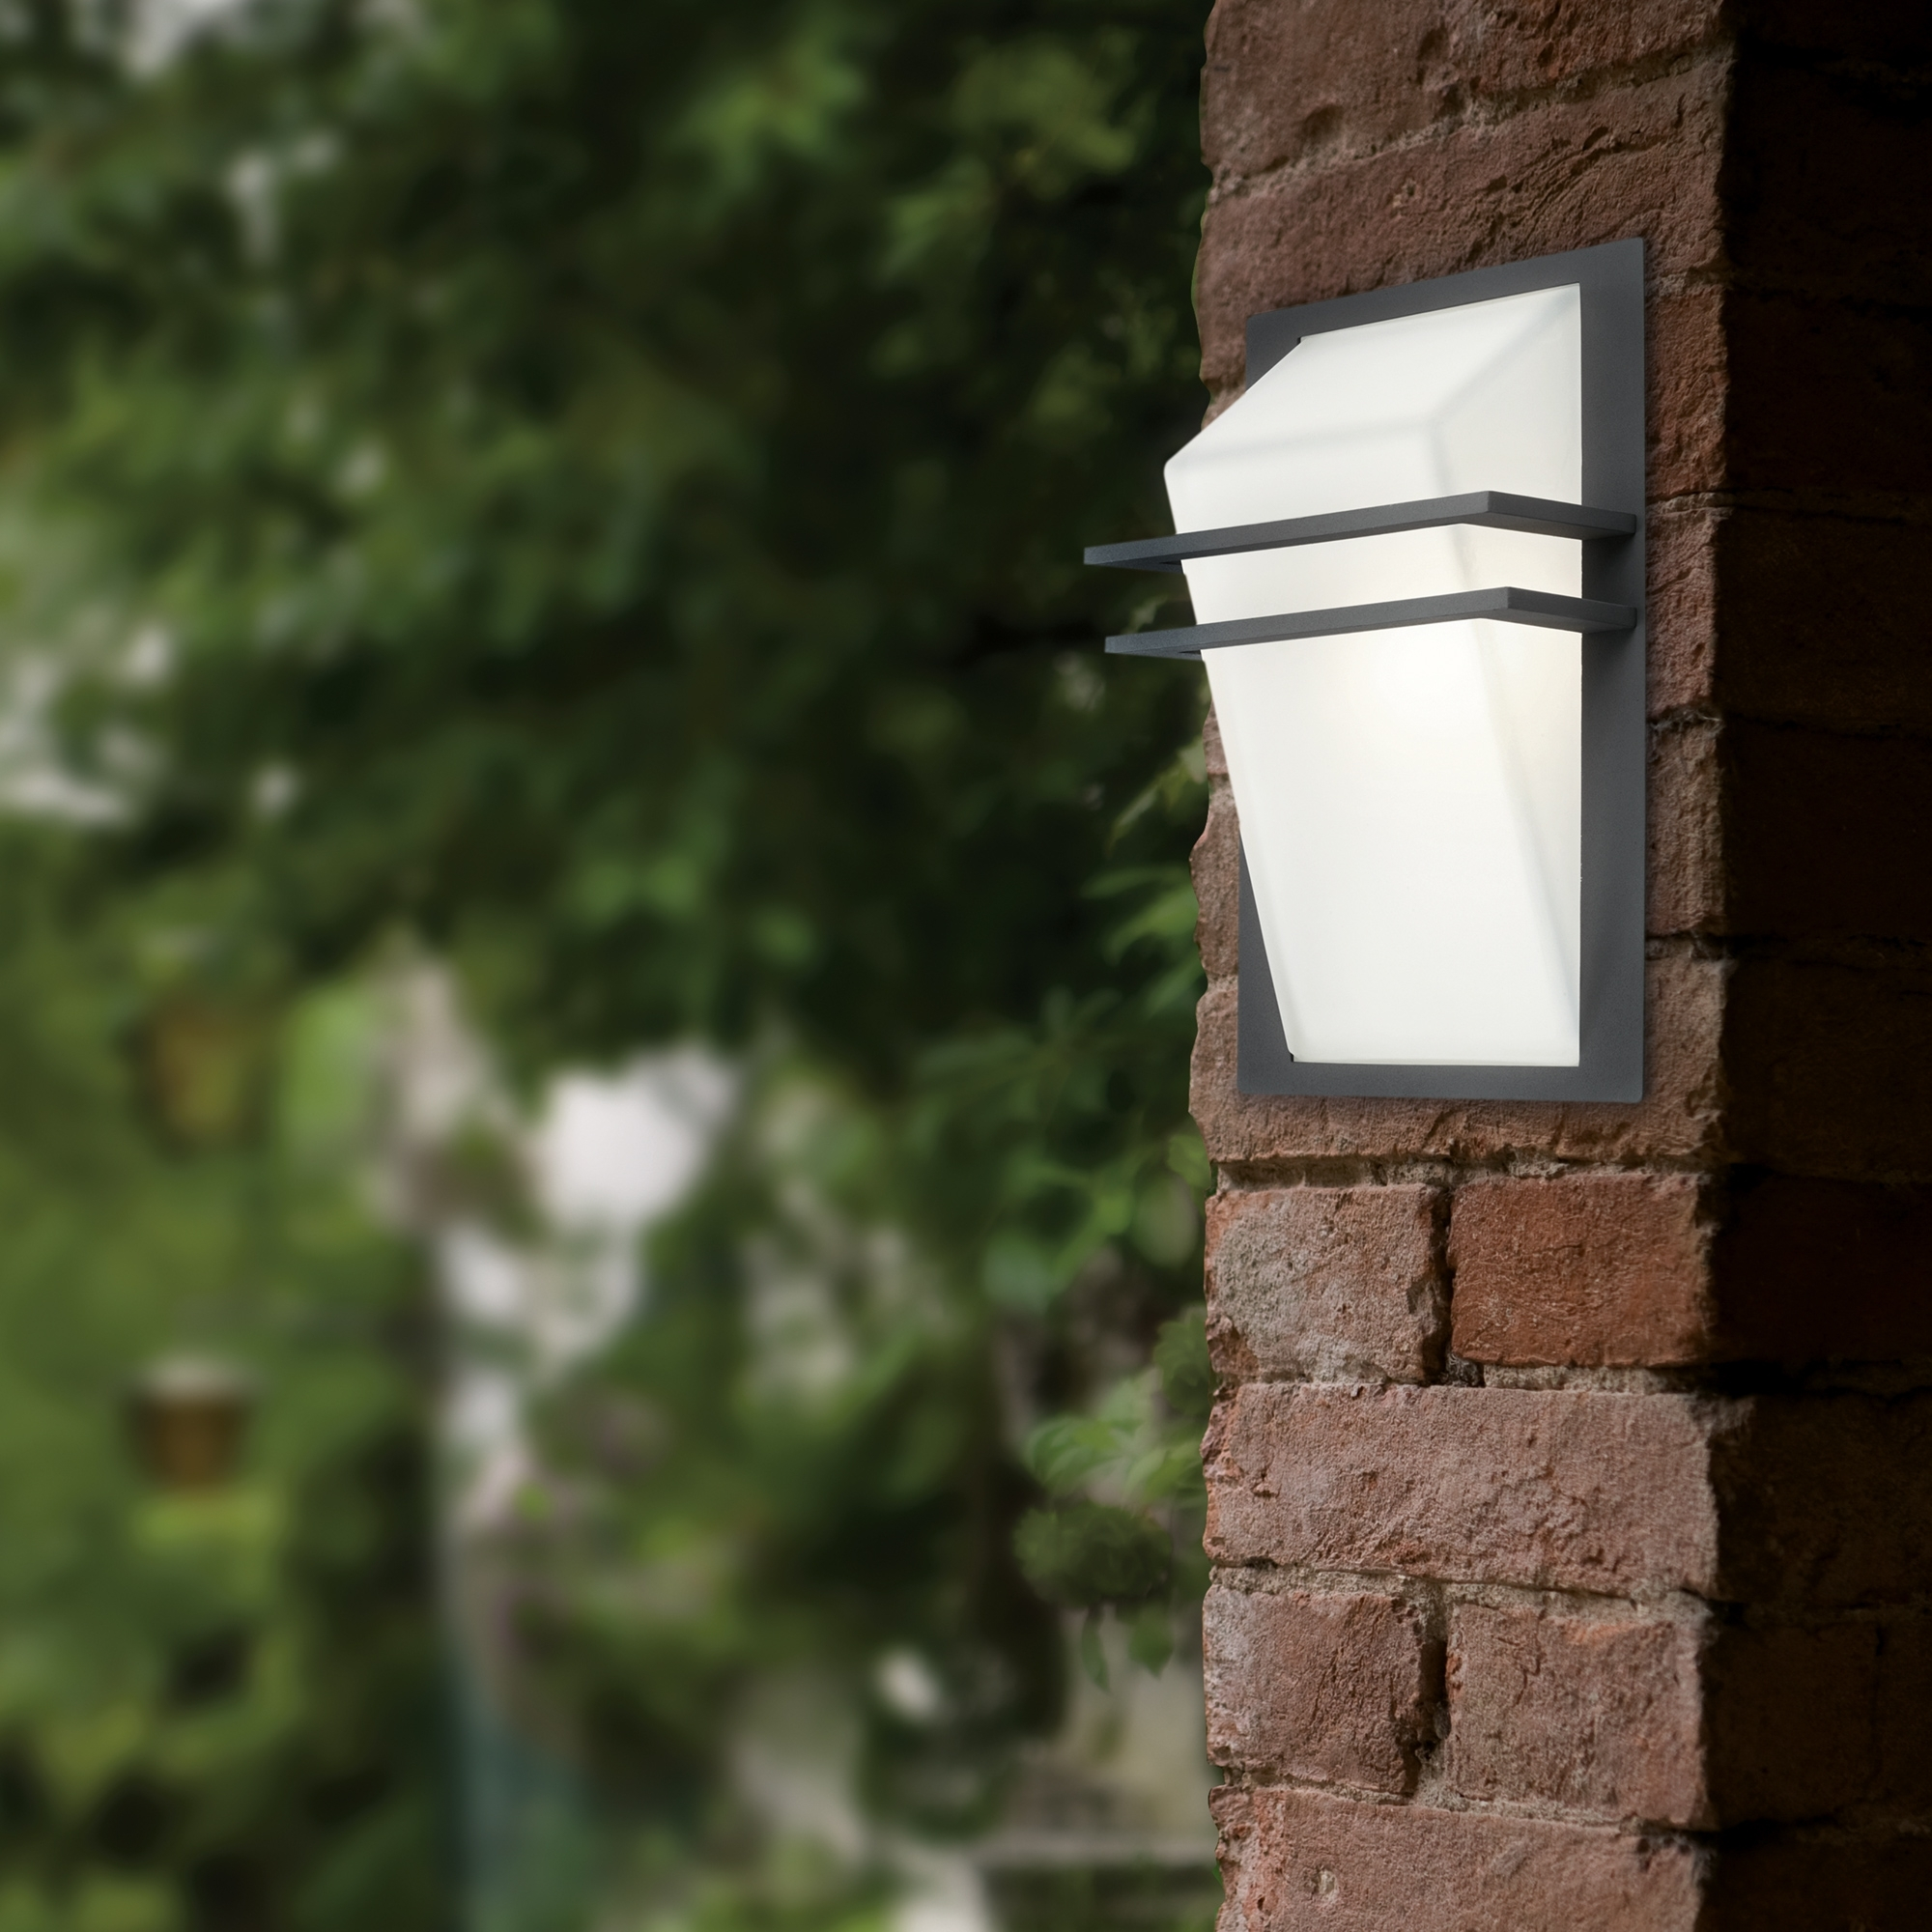 83432 / Park / Outdoor Lighting / Main Collections / Products – Eglo Regarding Eglo Outdoor Lighting (View 7 of 15)